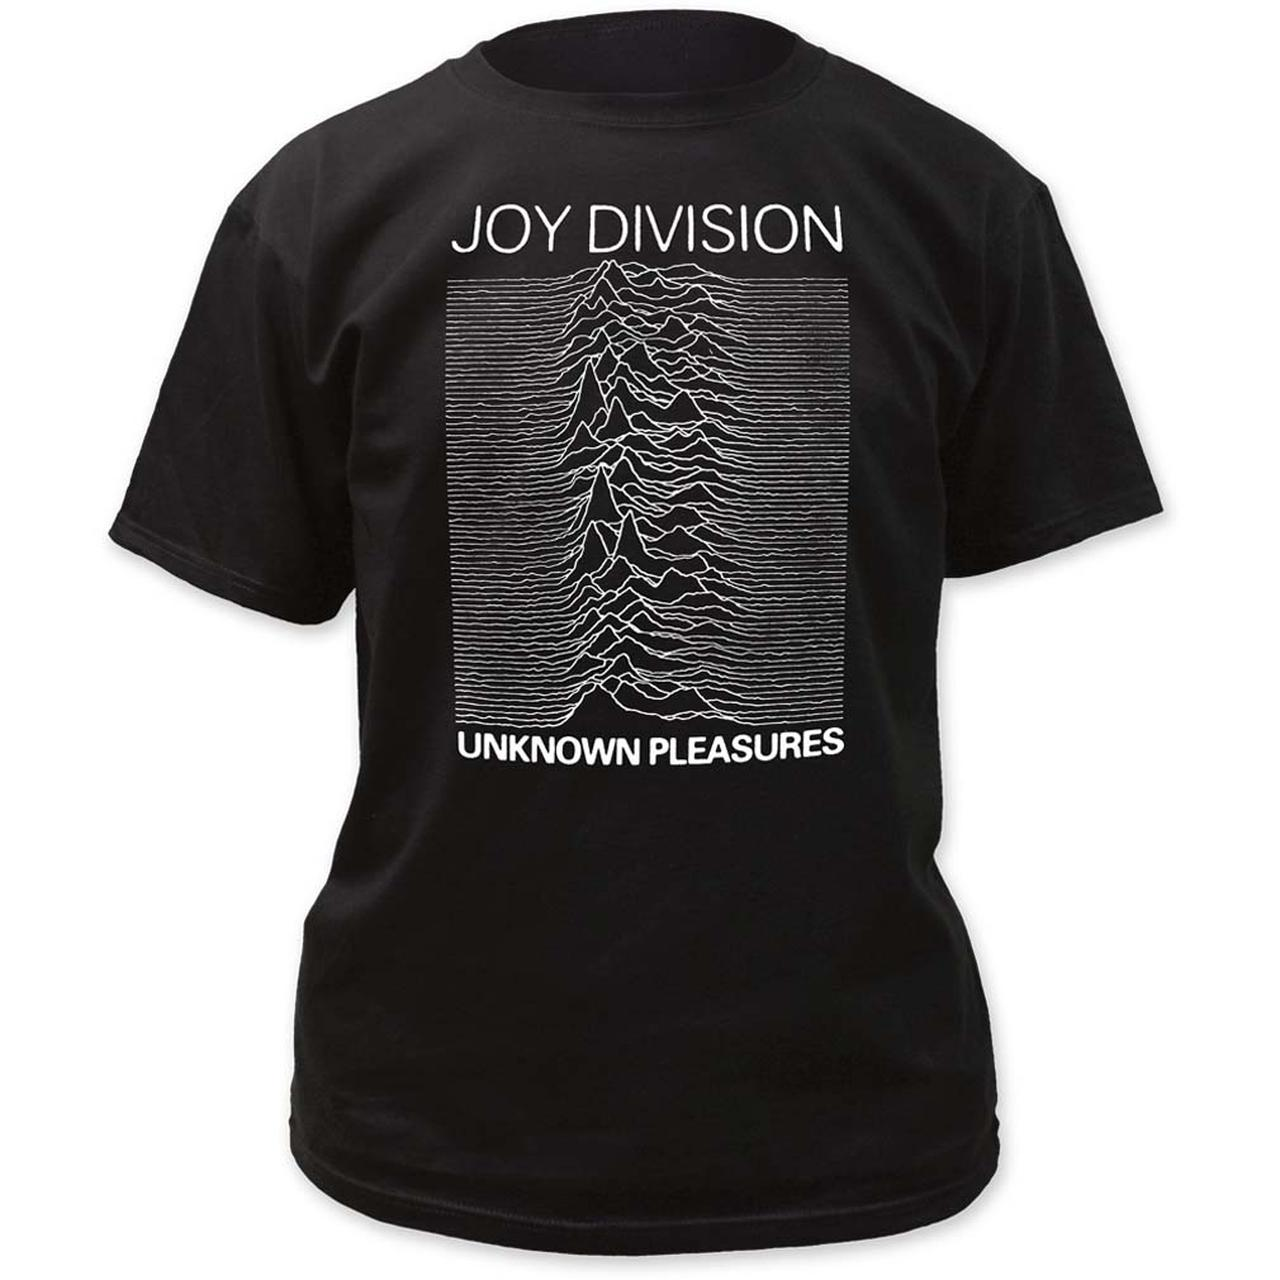 joy division t shirt joy division unknown pleasures t shirt. Black Bedroom Furniture Sets. Home Design Ideas